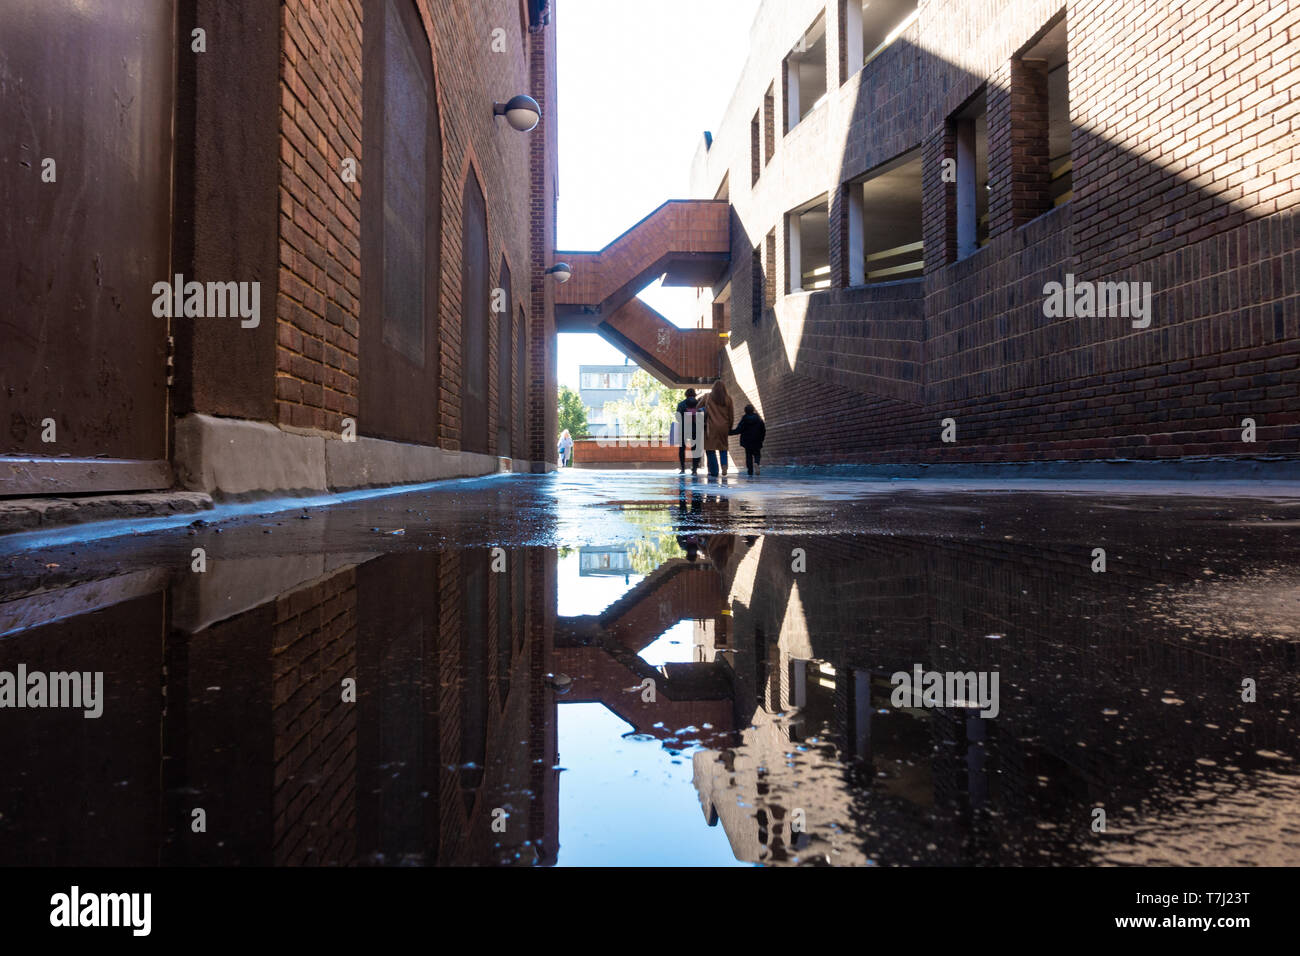 1970s-architecture-reflects-in-a-puddle-following-a-shower-T7J23T.jpg